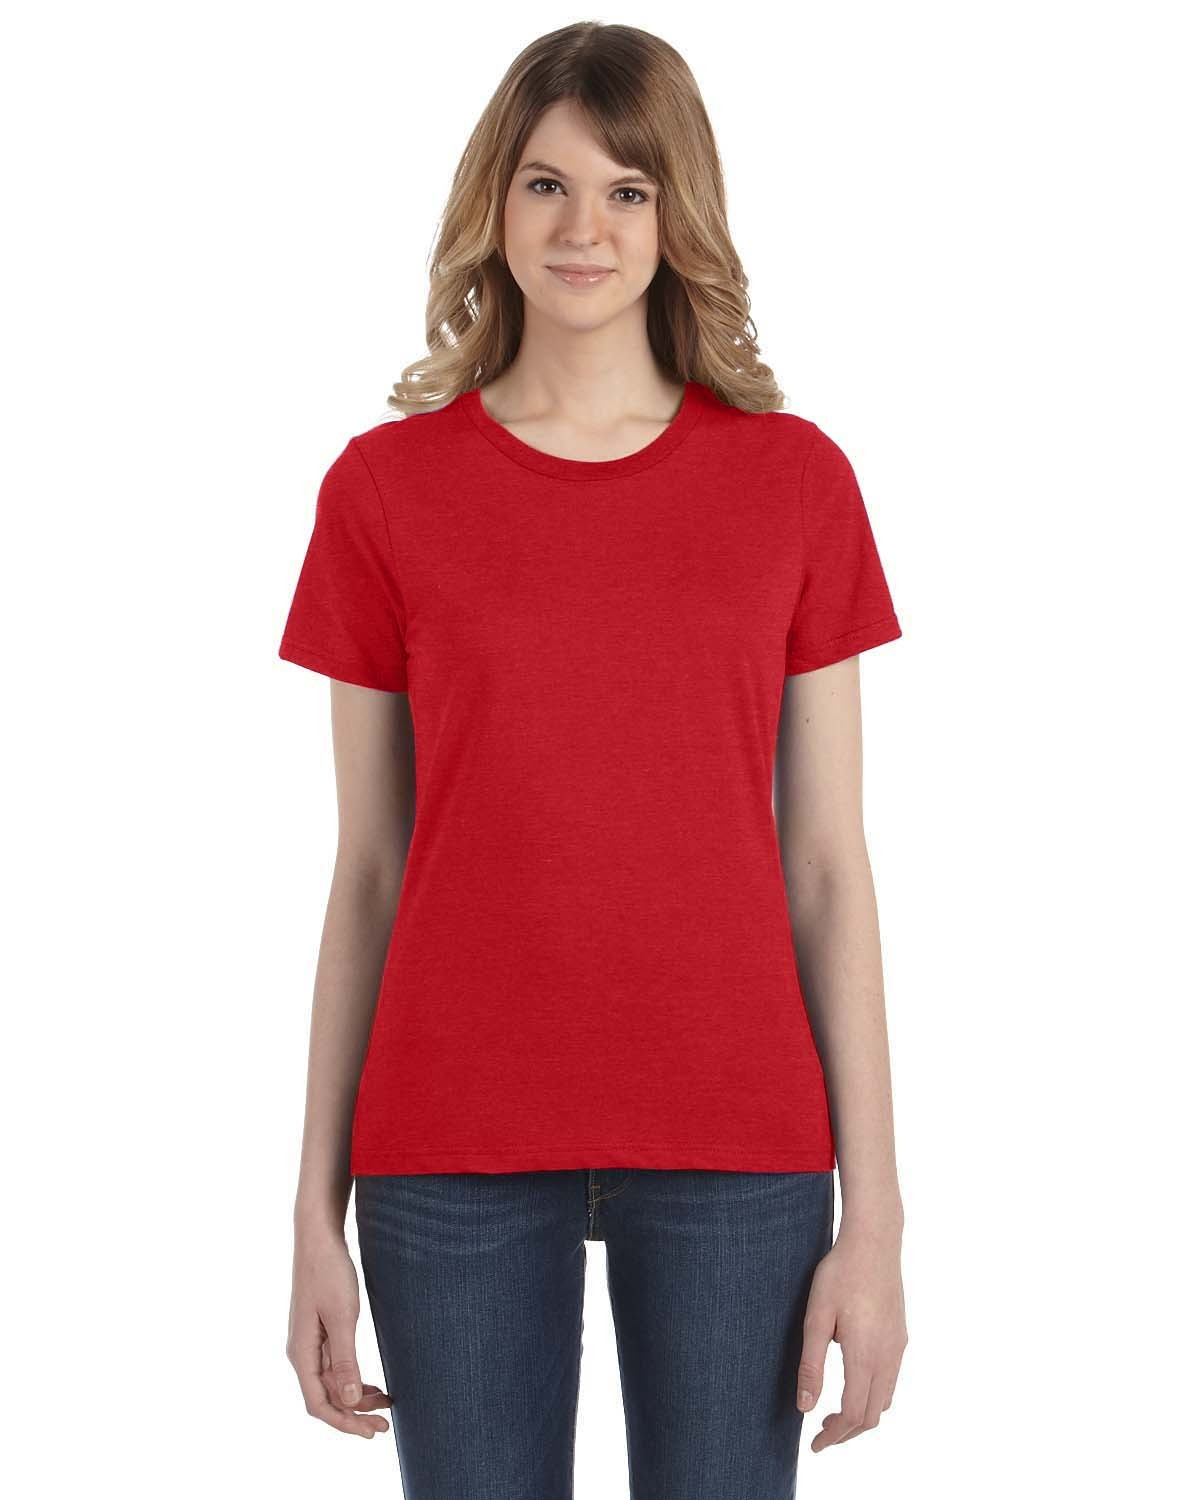 880 Anvil HEATHER RED